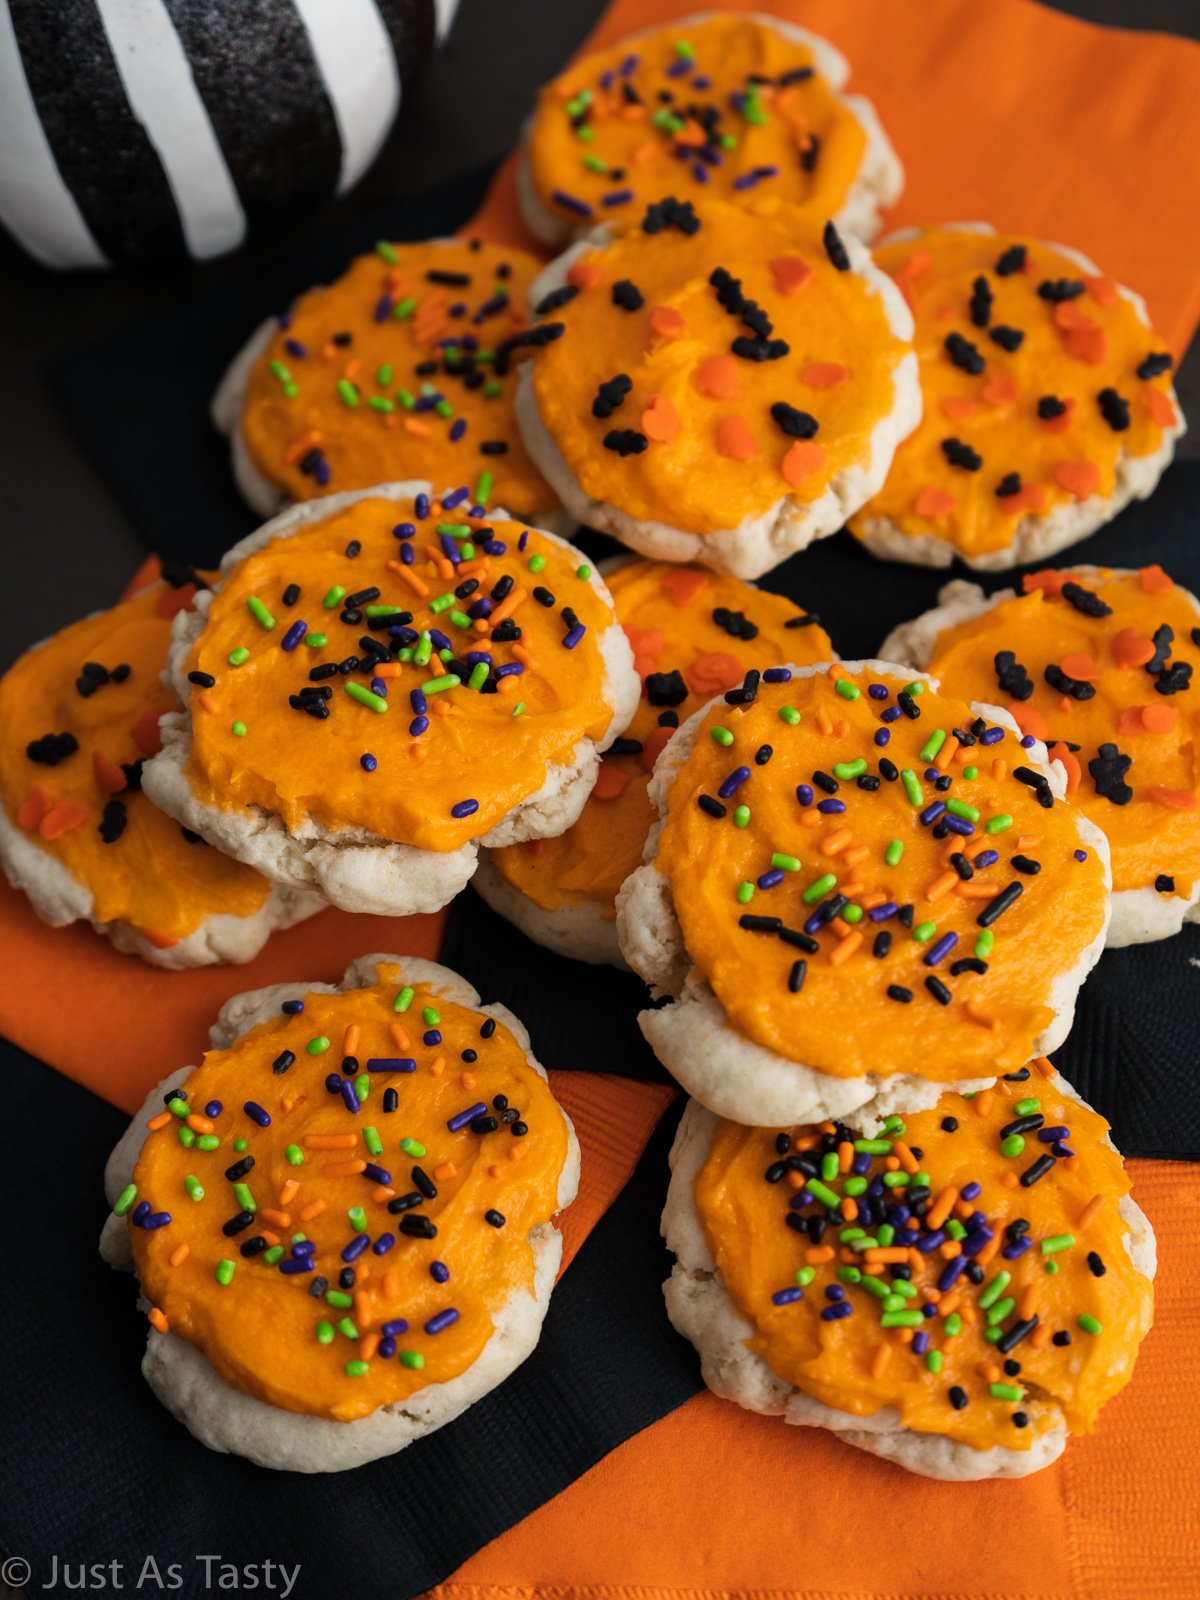 Lofthouse frosted sugar cookies topped with orange frosting and Halloween sprinkles.